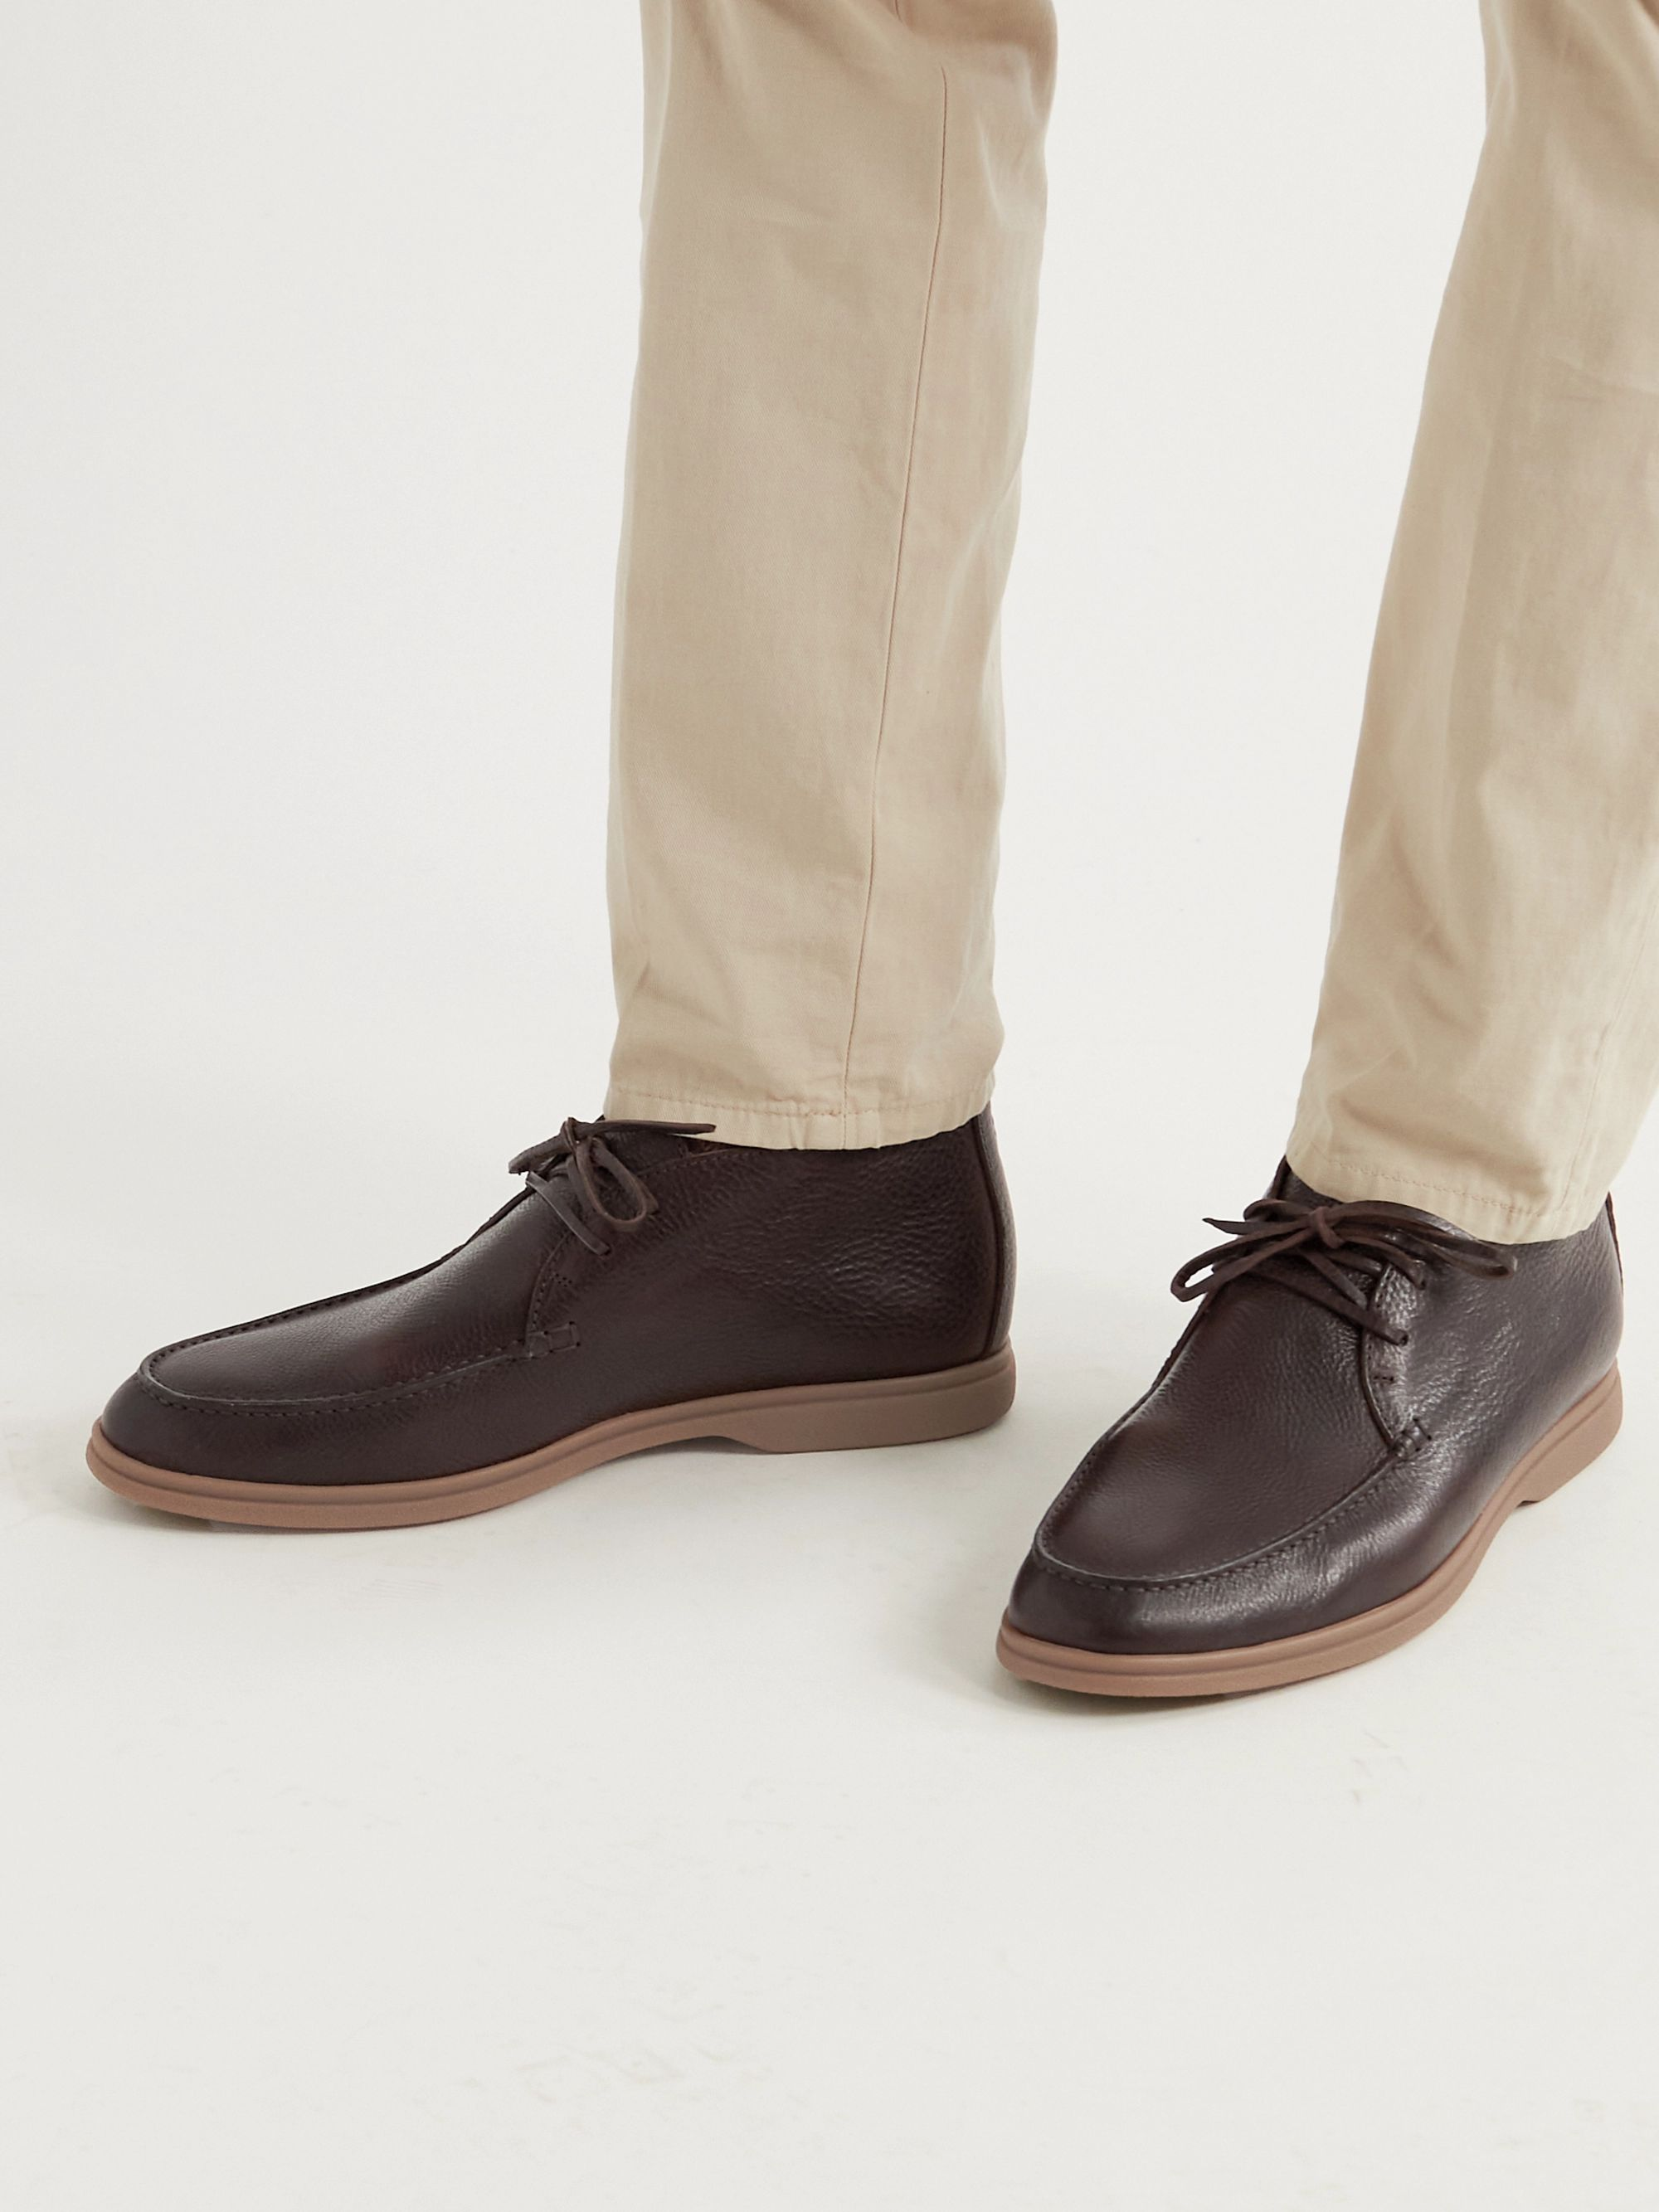 BRUNELLO CUCINELLI Full-Grain Leather Chukka Boots